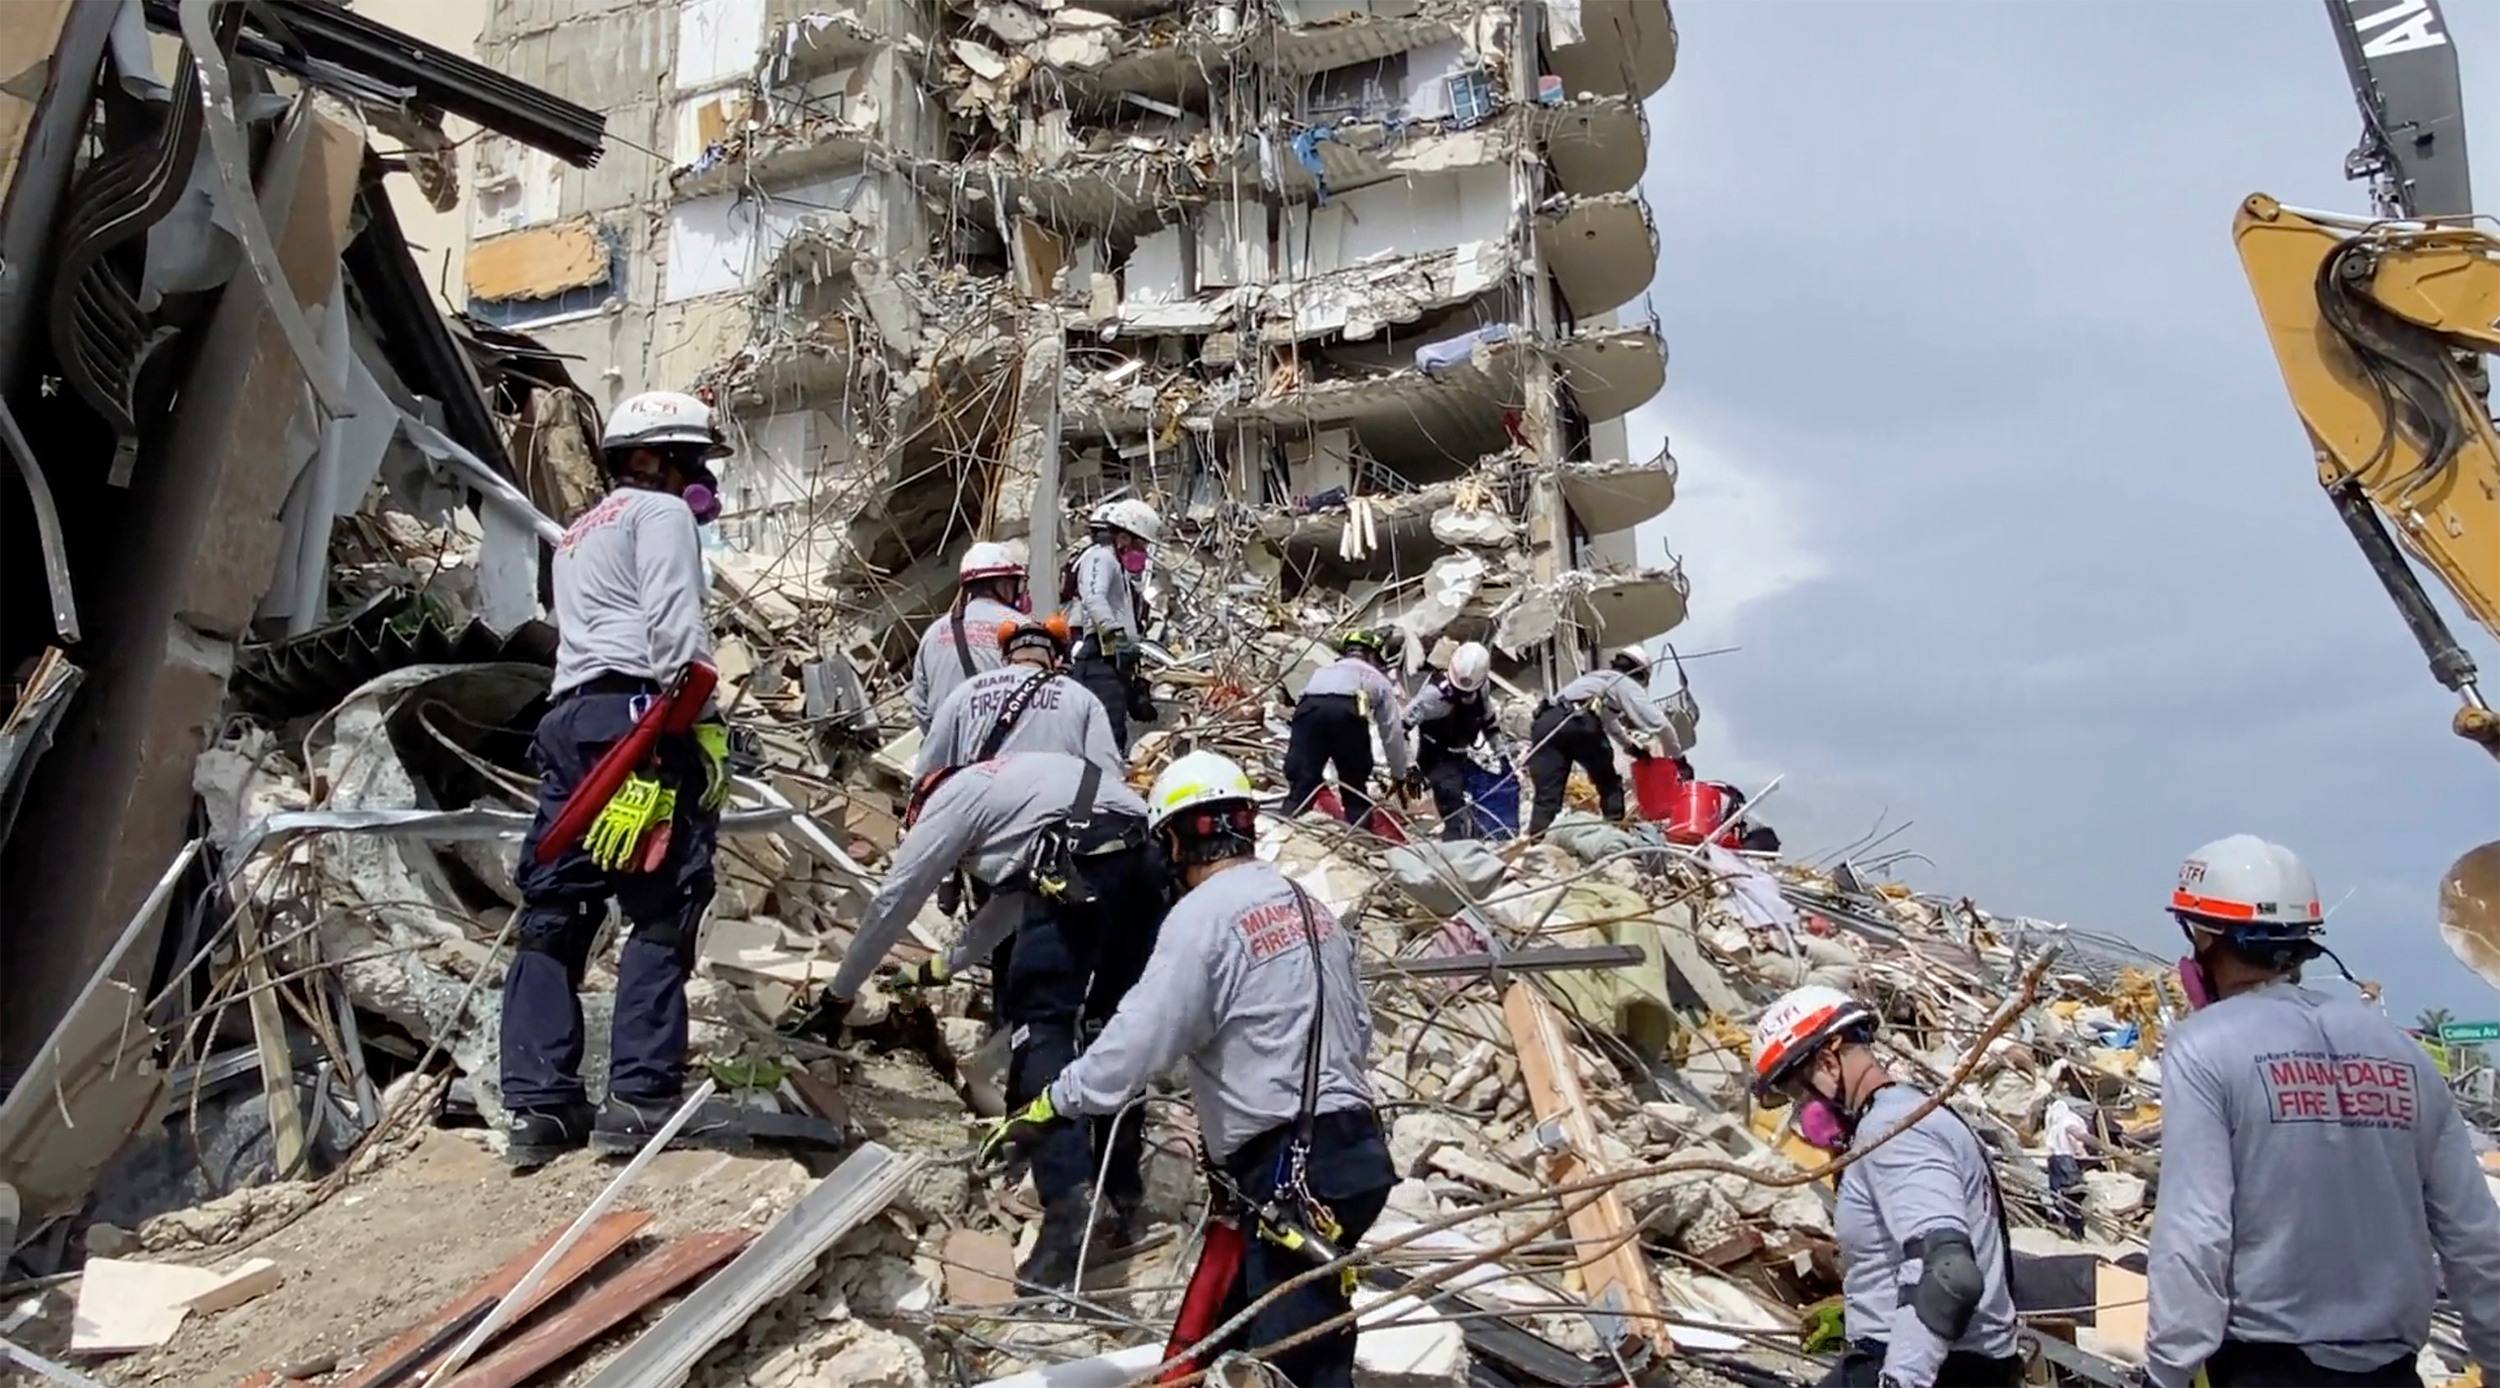 A world-class search and rescue team at the Surfside collapse has responded to disasters including 9/11 and Hurricane Katrina